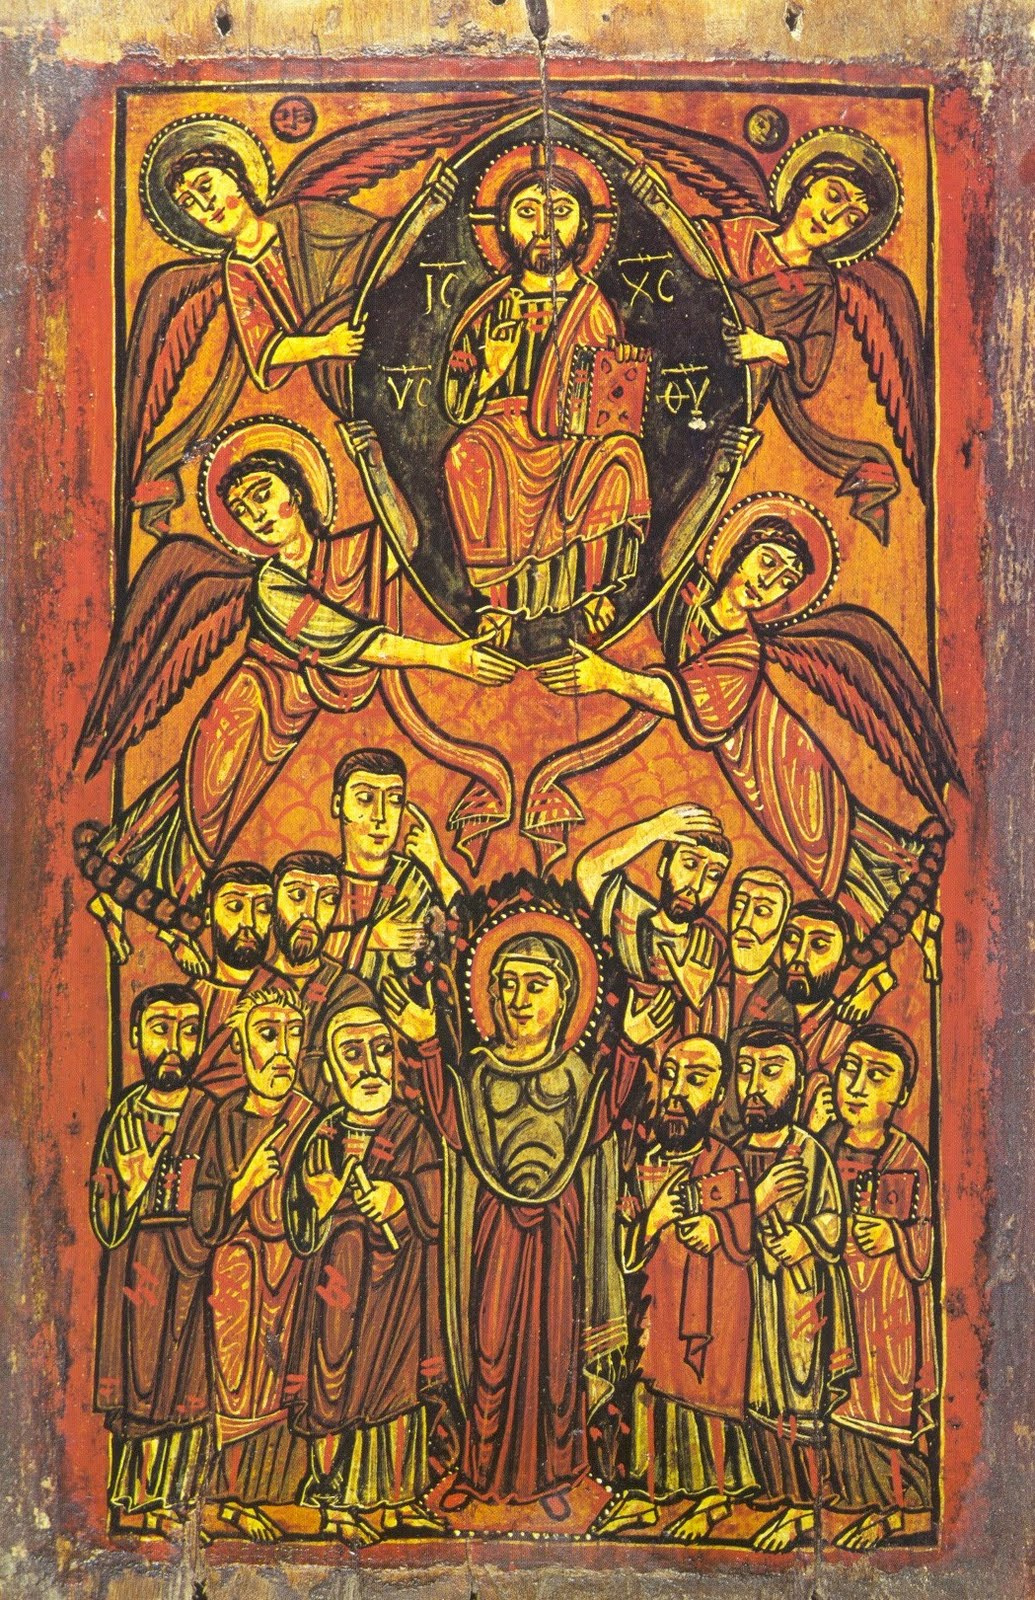 Icon of Ascension Day, showing Christ enthroned in glory above with the apostles and Mother of God below. The Ascension icon can also be viewed as an image of Christ coming at the end of time to judge the world.